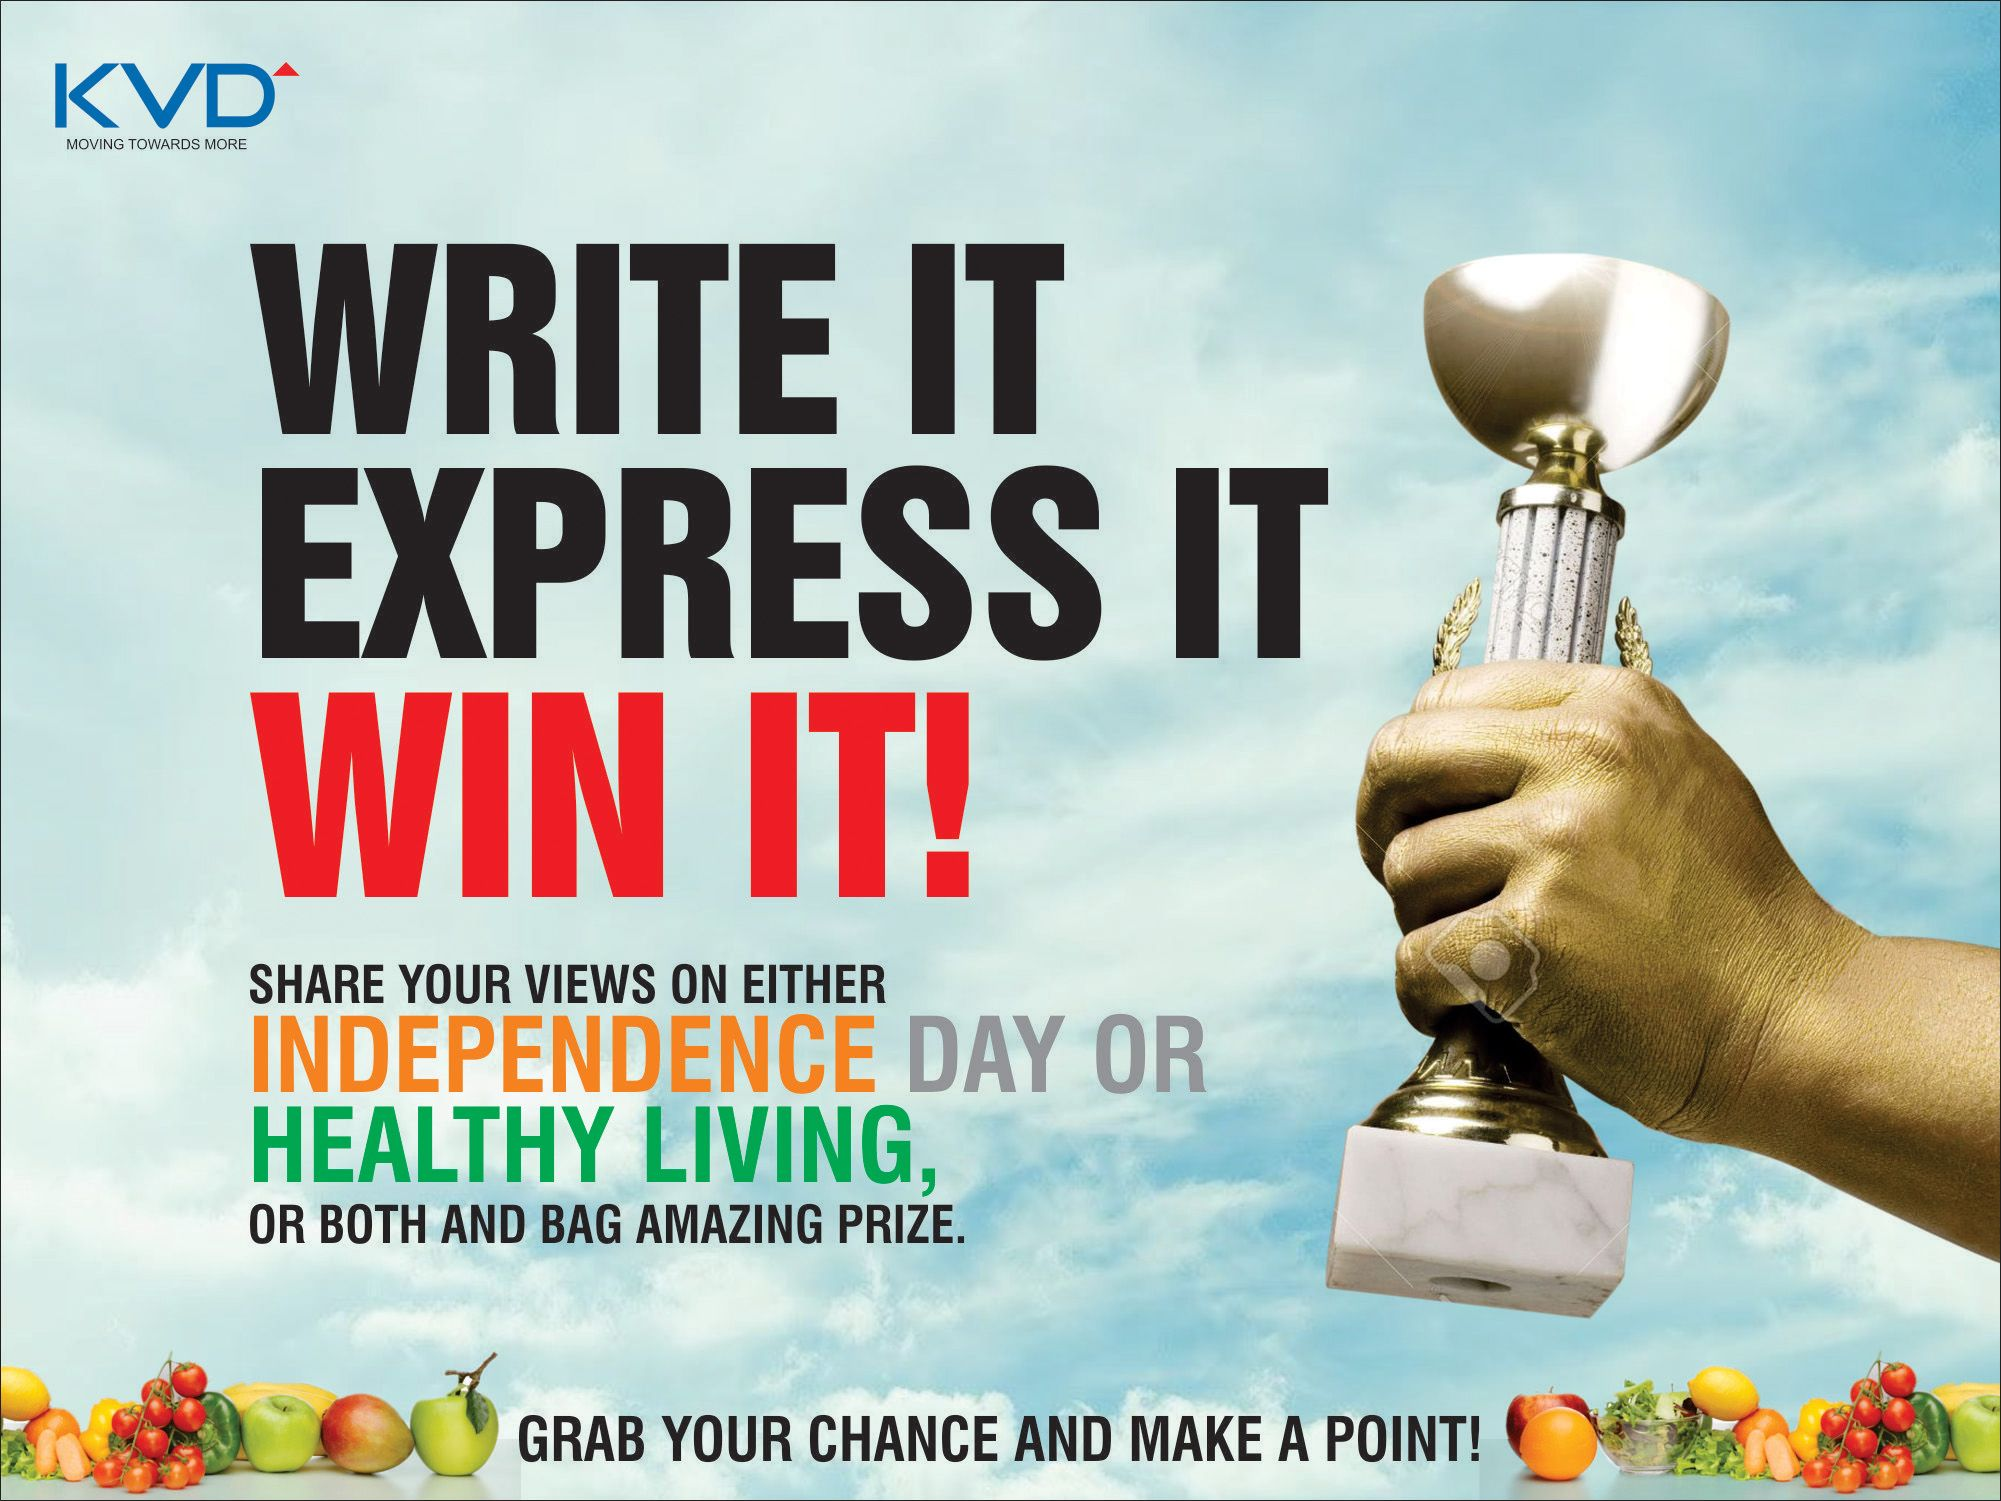 Share Your Thoughts About Independence Day Healthy Living And Won